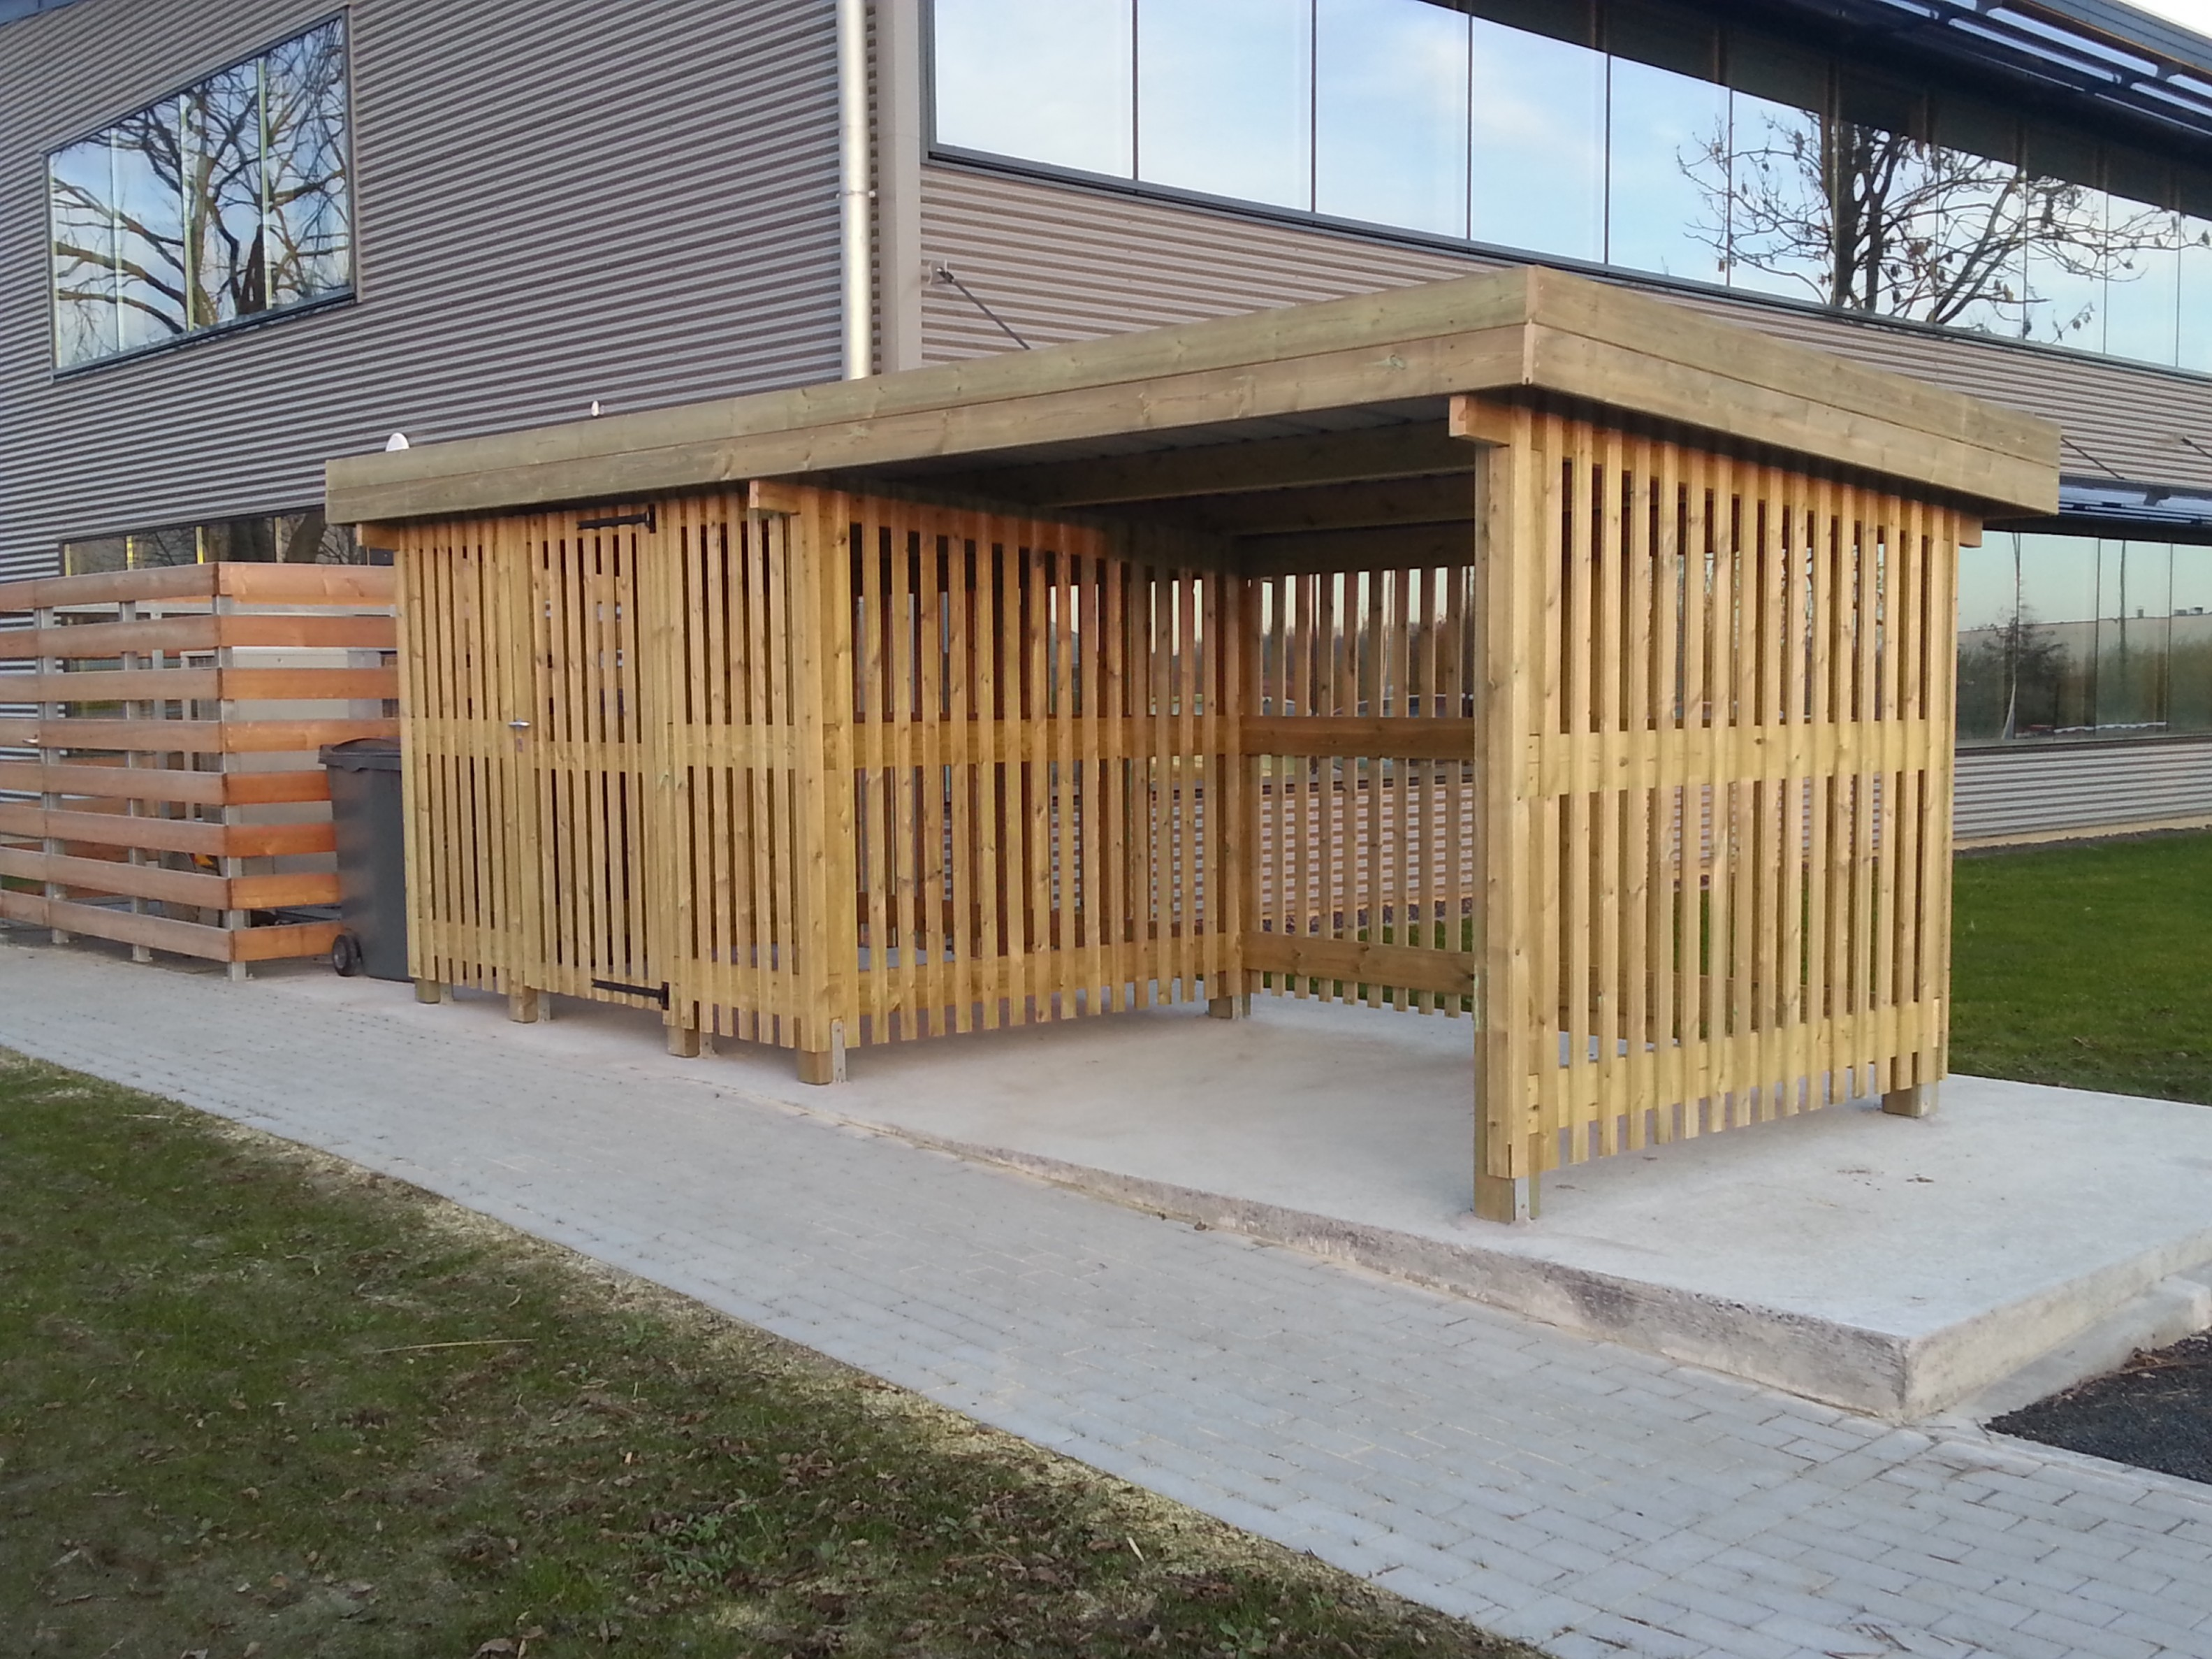 What Makes Definition Of Carport So Addictive That You Never Want To Miss One?   definition of carport